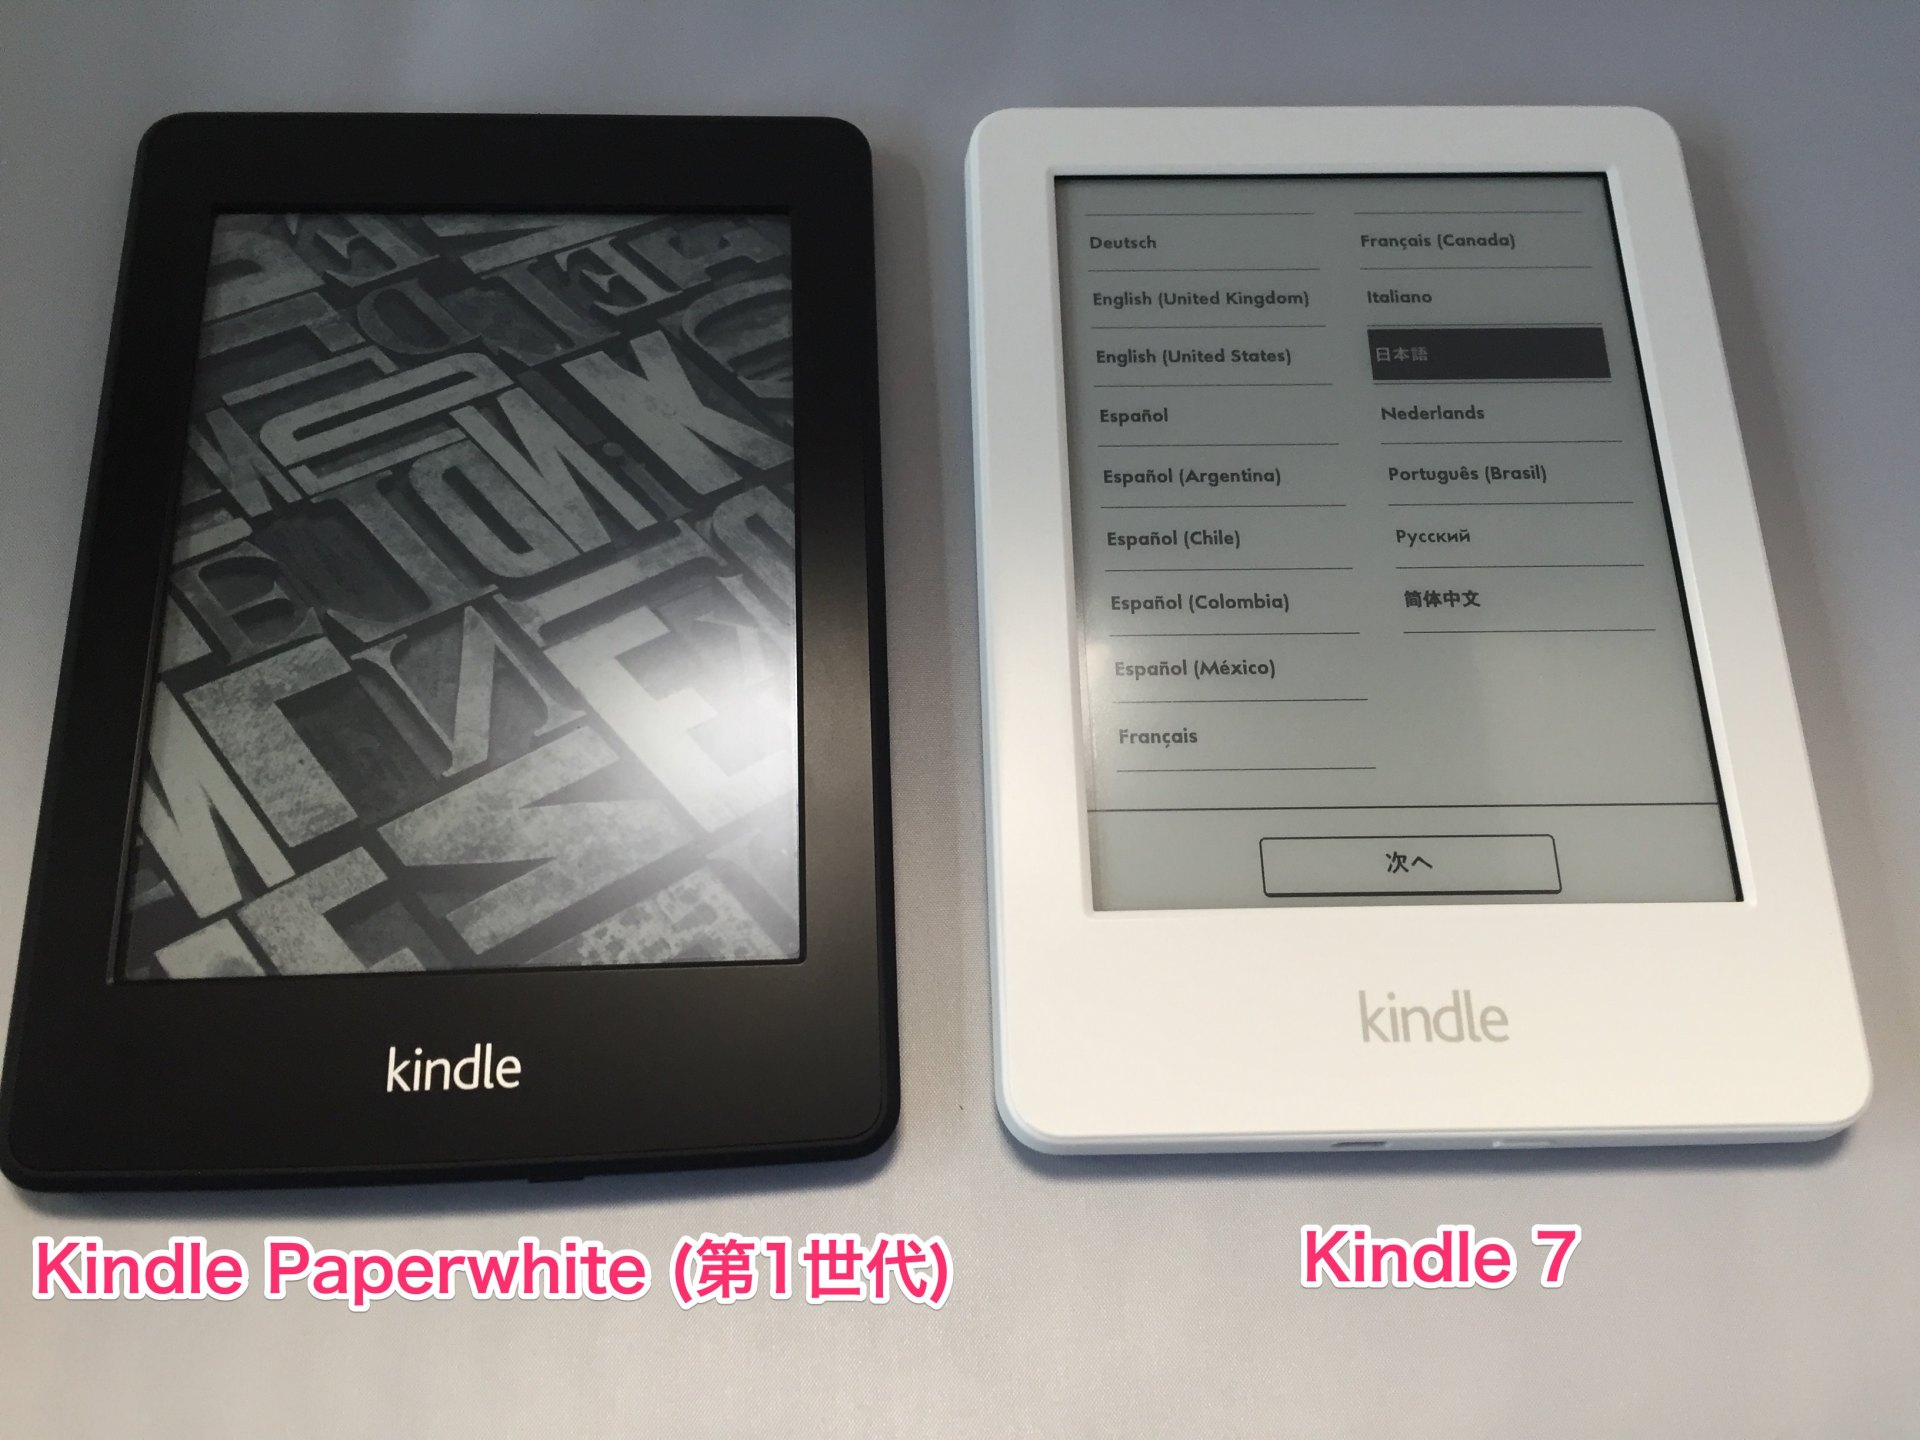 Kindle Paperwhite (第1世代)とKindle 7見た目比較